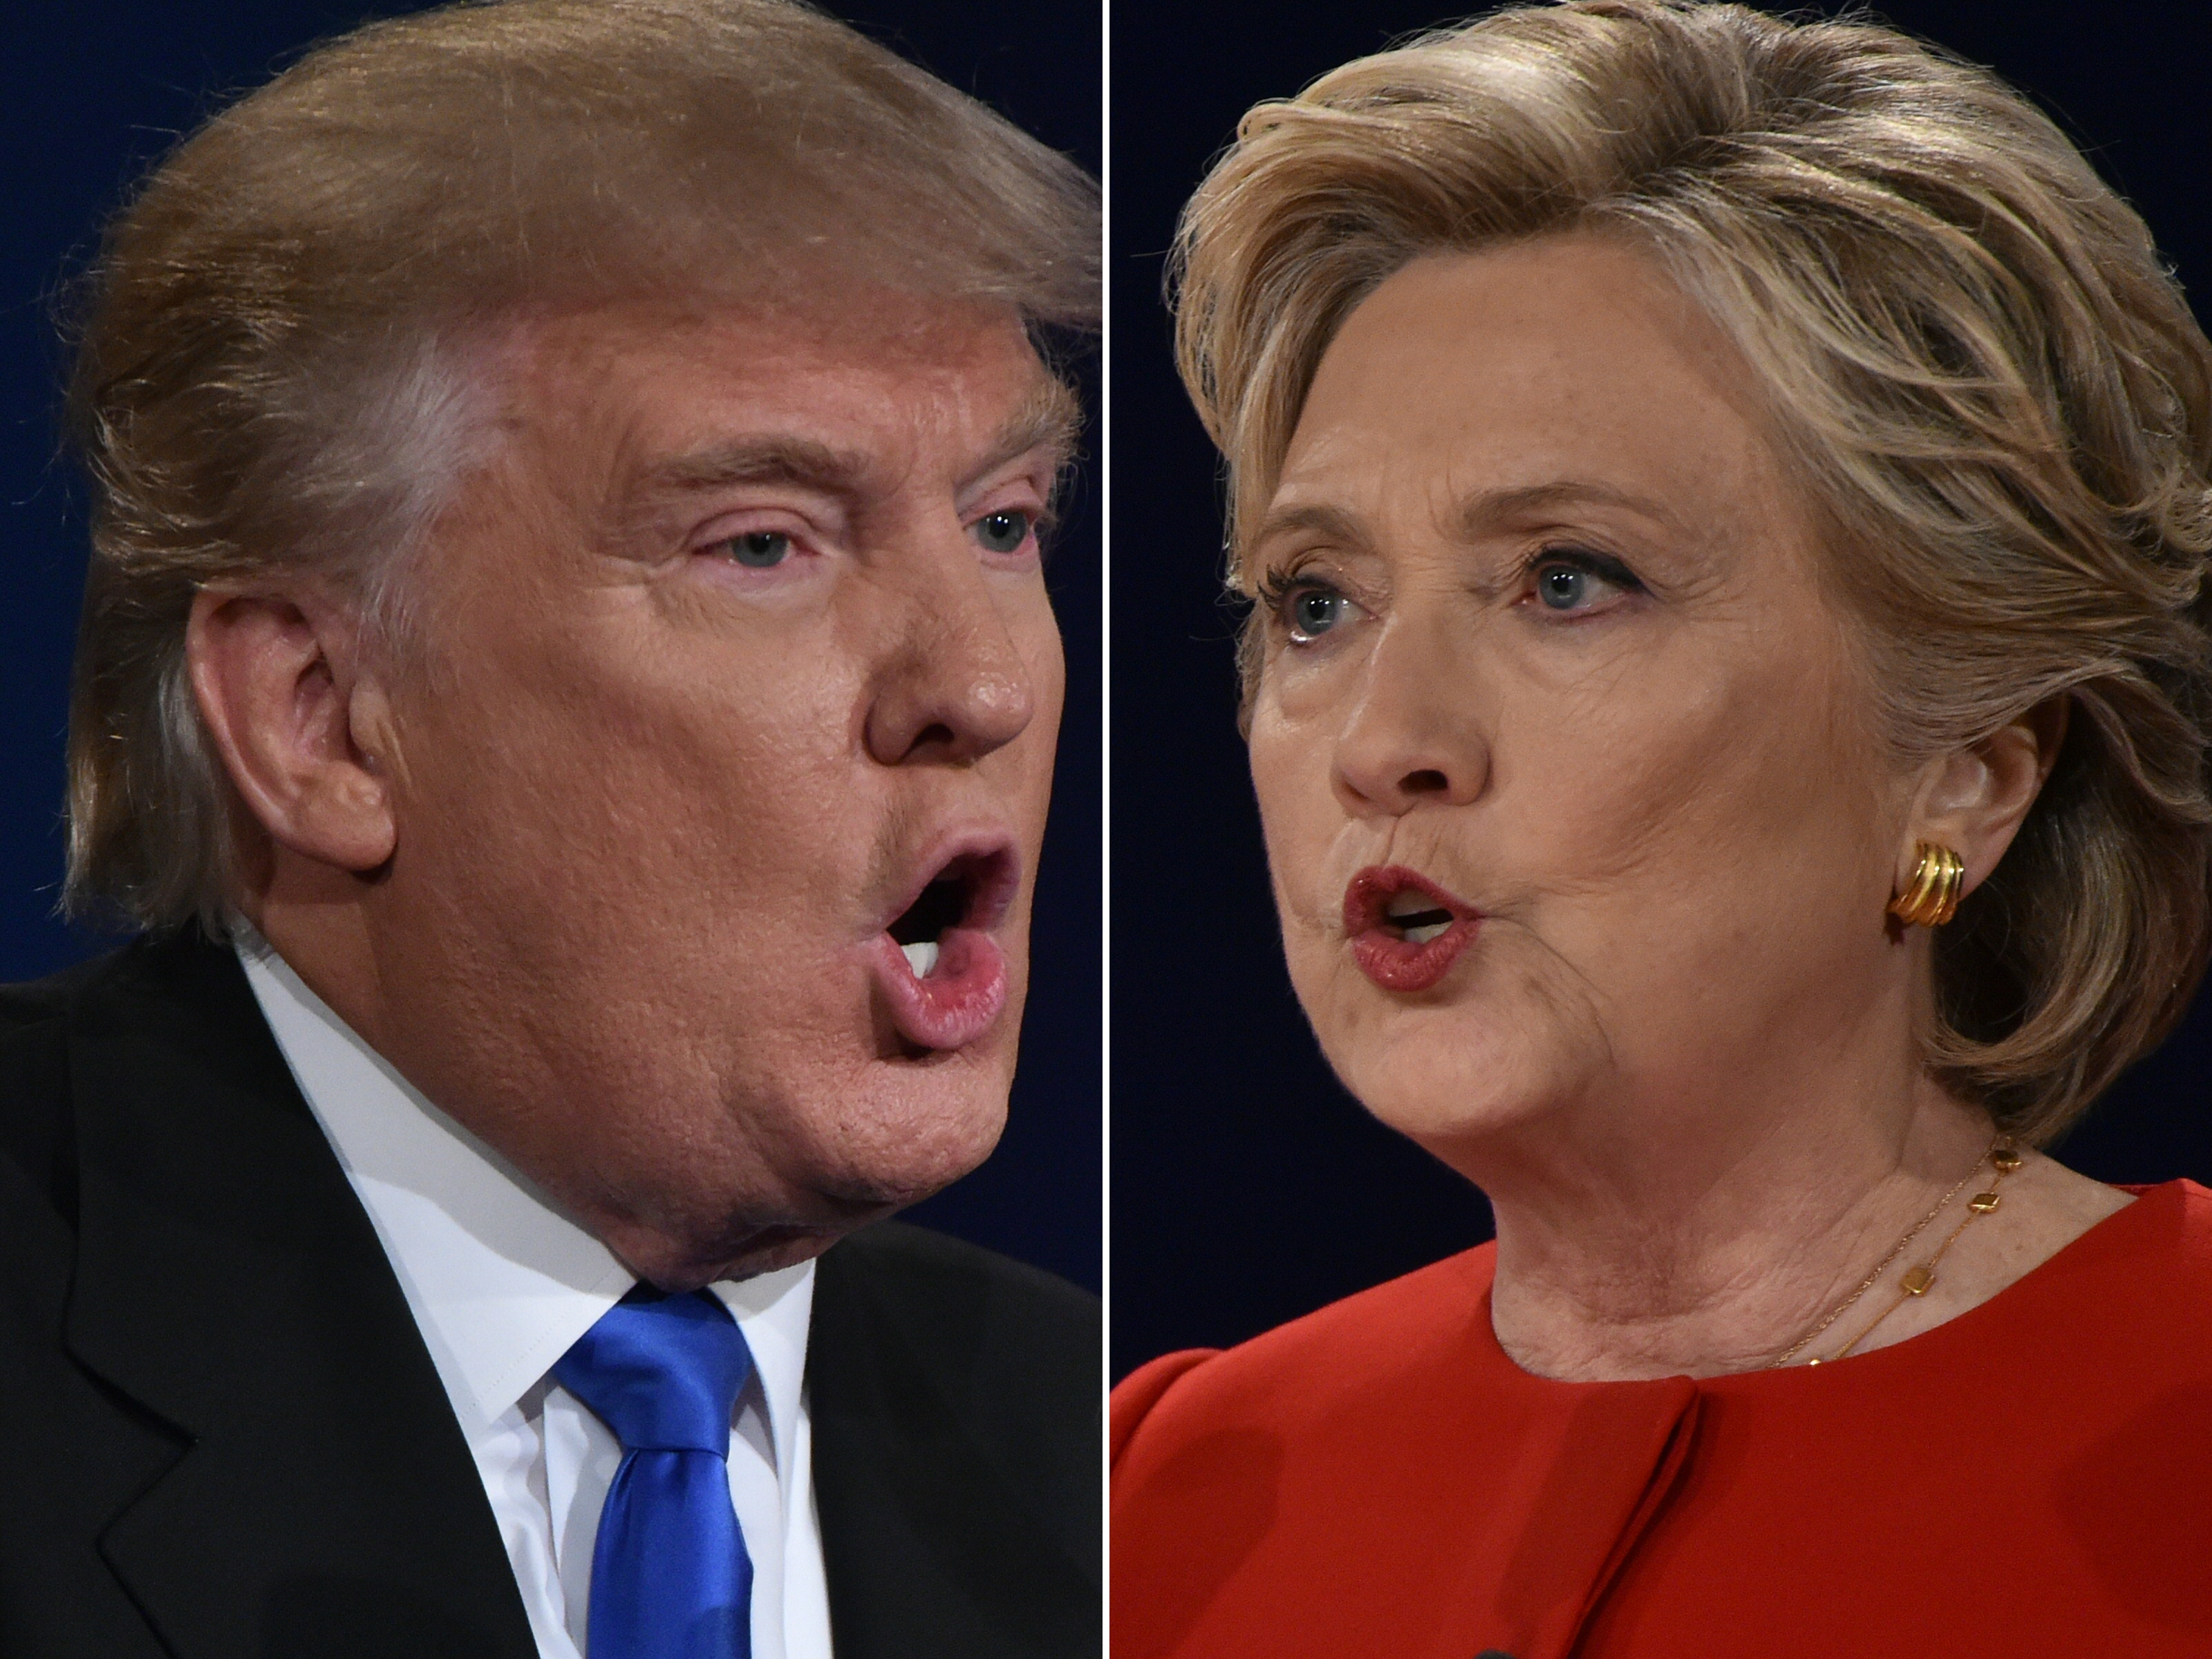 Republican nominee Donald Trump and Democratic nominee Hillary Clinton face off during the first presidential debate at Hofstra University in Hempstead, N.Y., on Sept. 26, 2016.